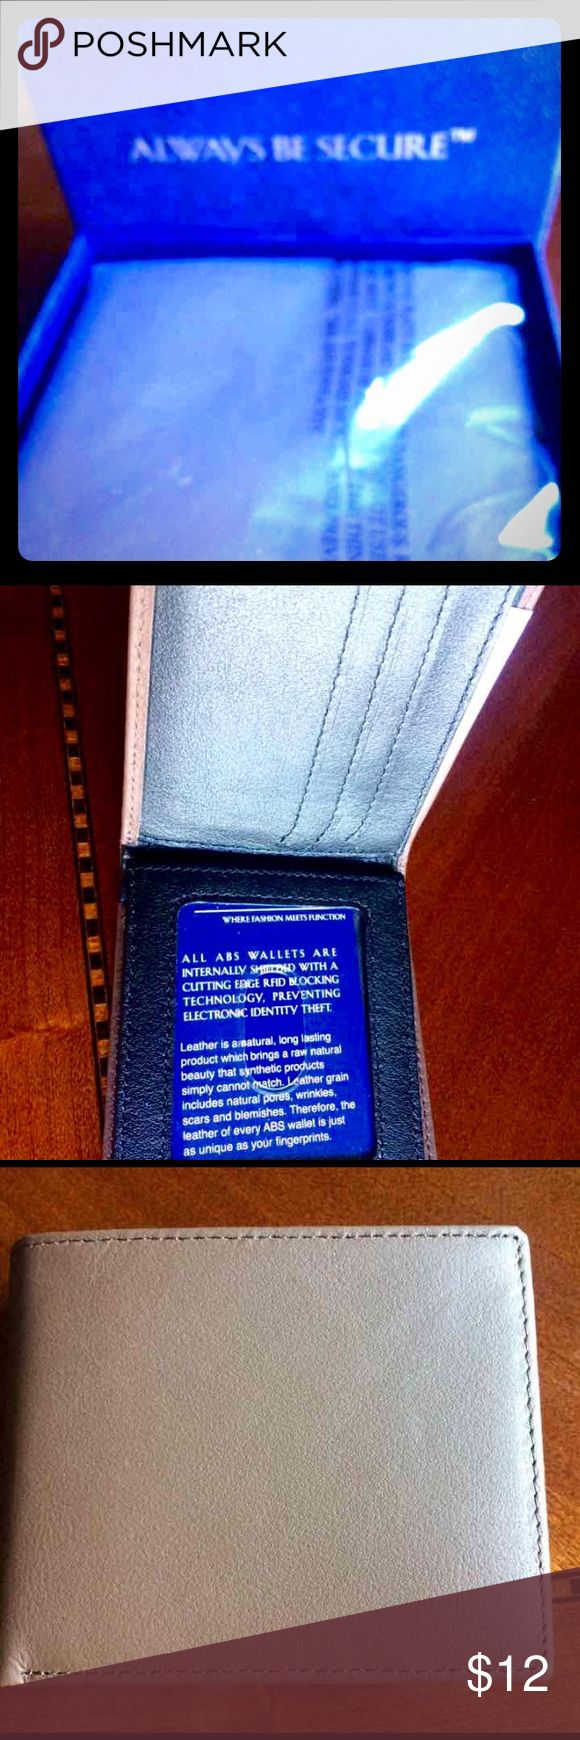 RFID Men's Wallet (QVC) Stocking Stuffer Great holiday gift or stocking stuffer. Brand new in box. Bi-fold wallet in brown. Retail $35.   Features RFID technology that blocks radio frequency identification and helps keep your credit cards safe. From Always Be Secure.  RFID technology blocks radio frequency identification  Currency holder  Six credit cards slots  Not all cards contain RFID chips--this product only helps protect cards with RFID chips  Body 100% leather; lining 100% polyester…